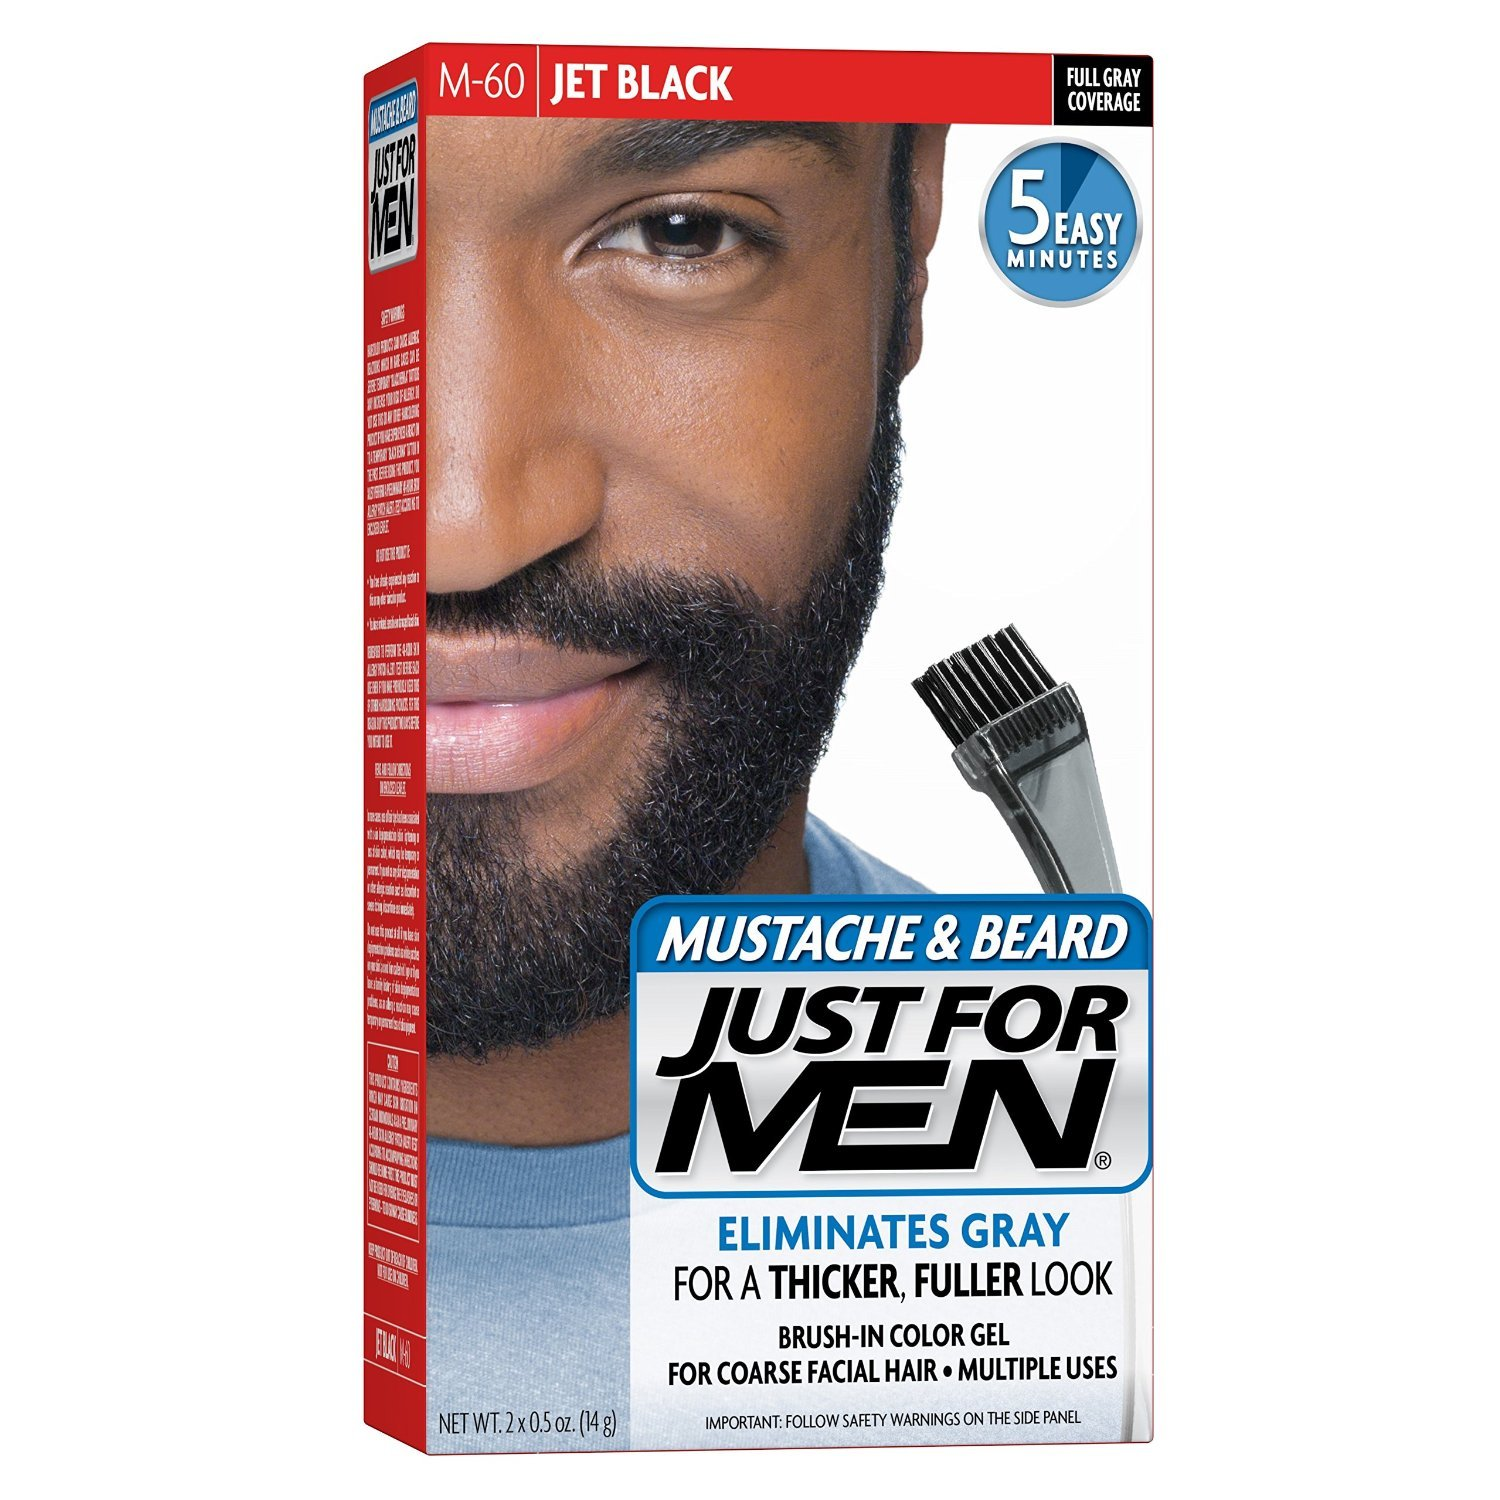 Just For Men Mustache & Beard #M-60 Jet Black Color Gel